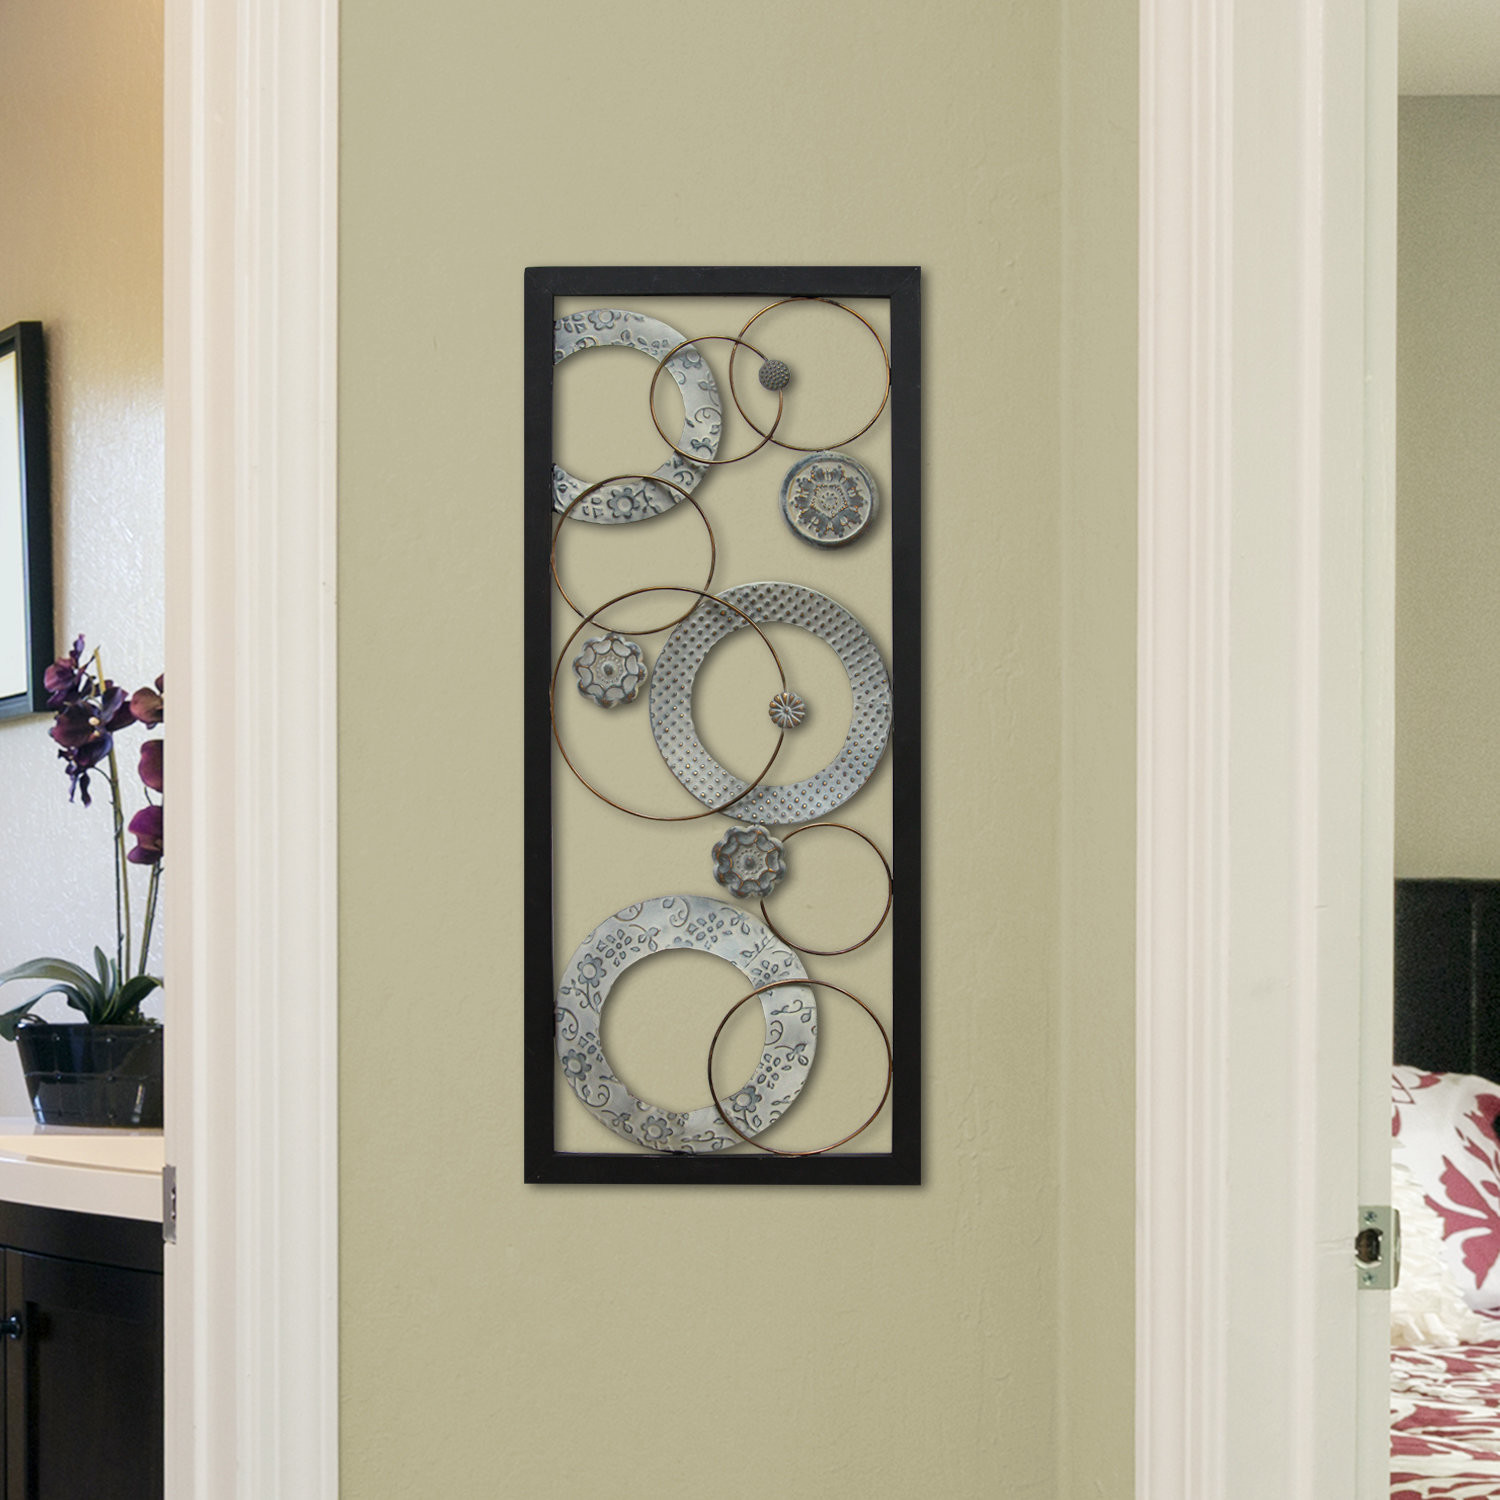 Farmhouse Metal Wall Vase Of Stratton Home Decor Stamped Circles Panel Wall Dacor Wayfair Intended for Stamped Circles Panel Wall Decor